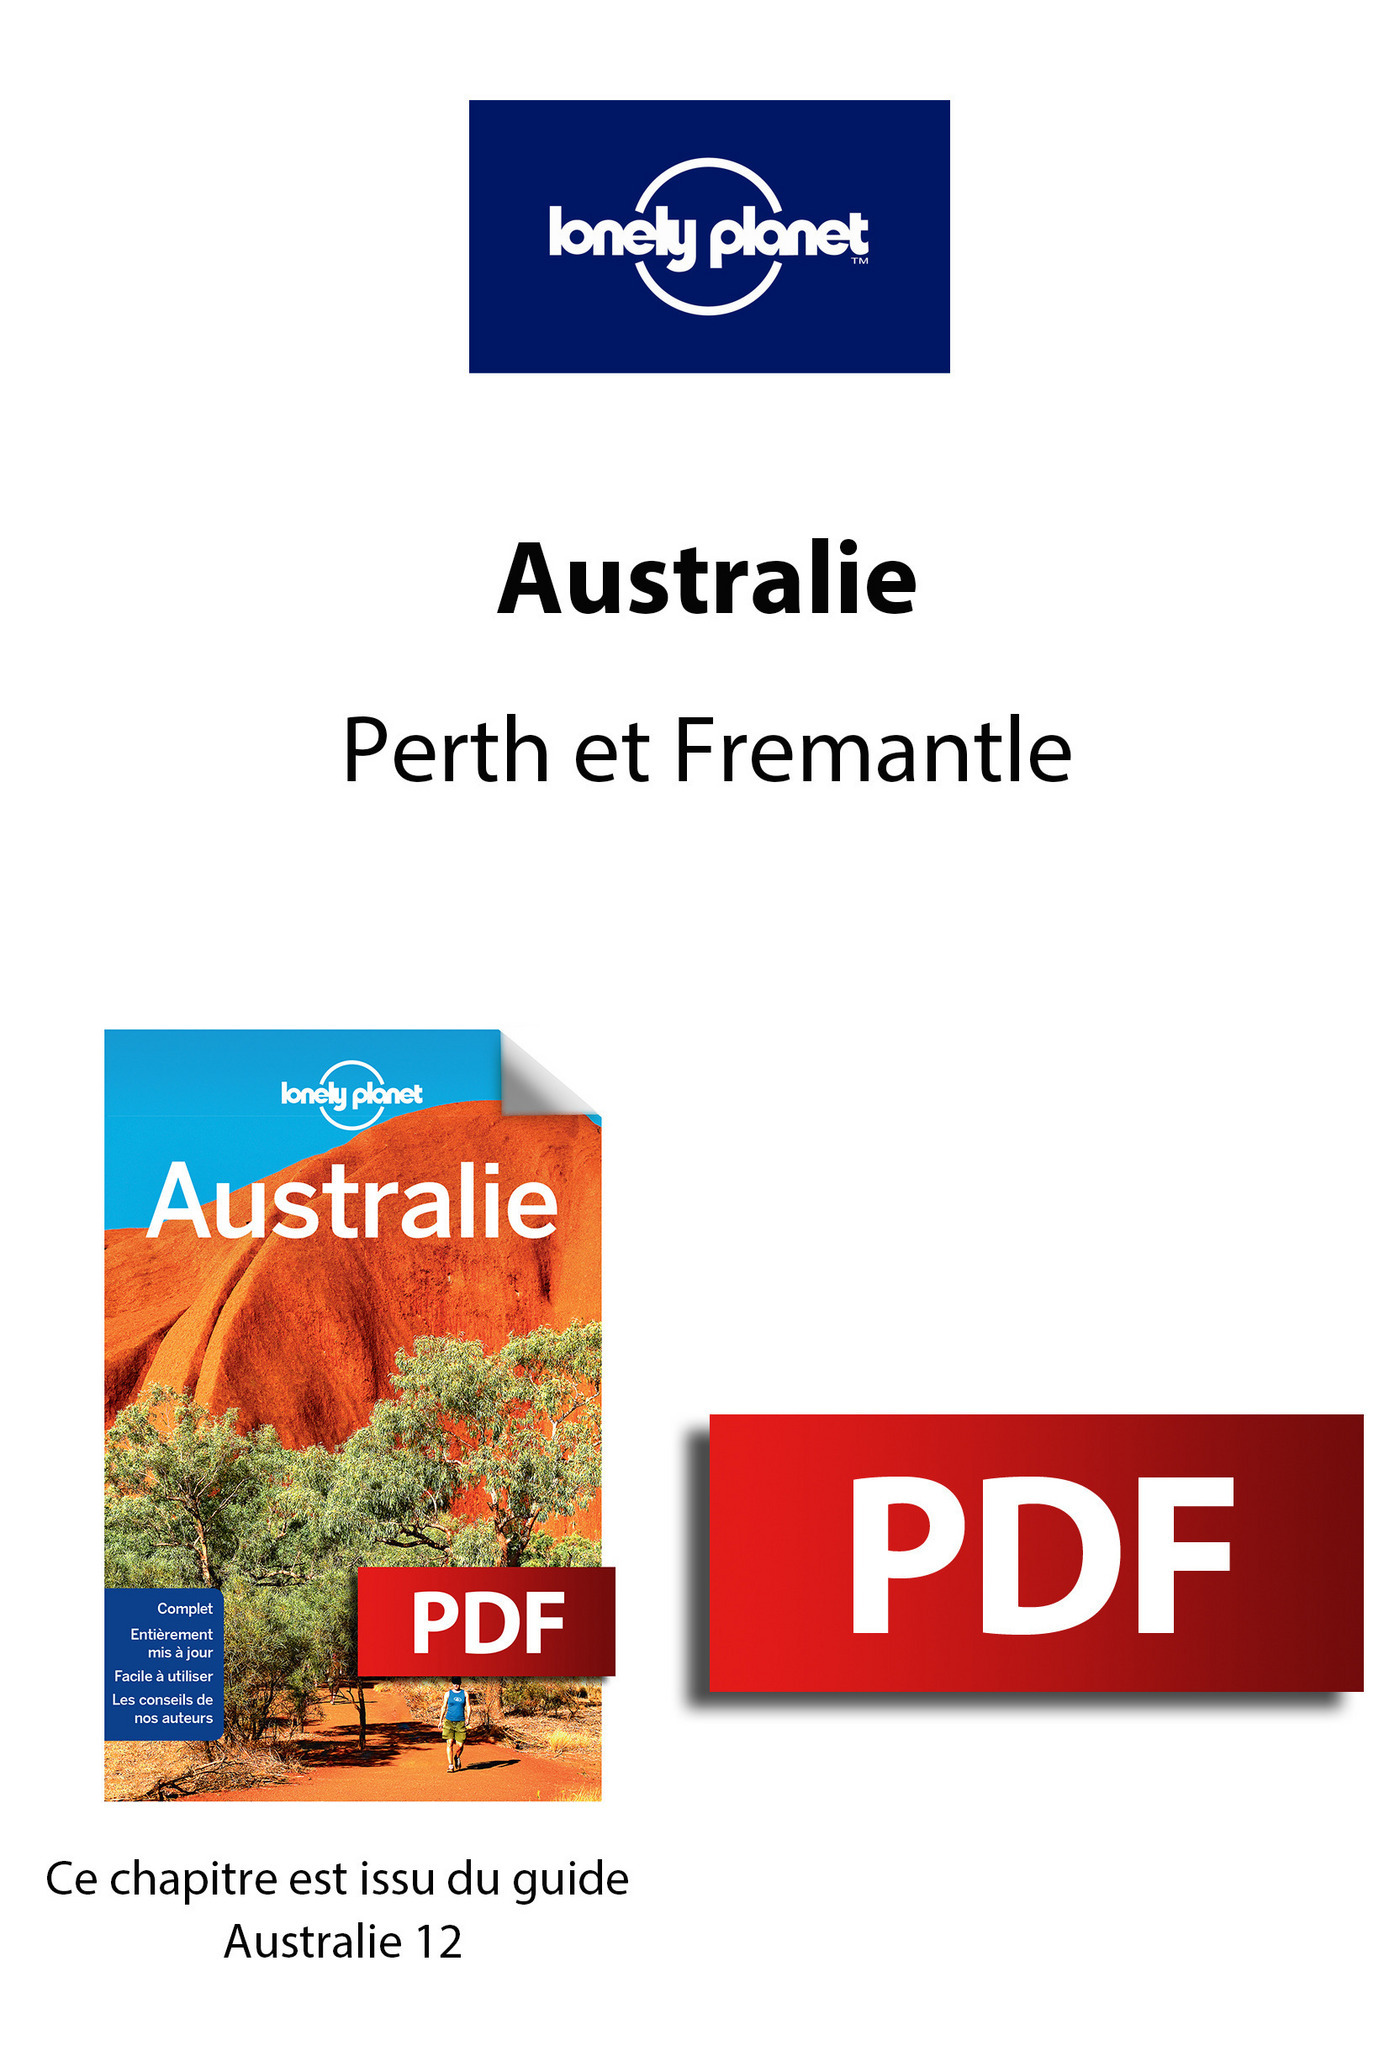 Australie - Perth et Fremantle